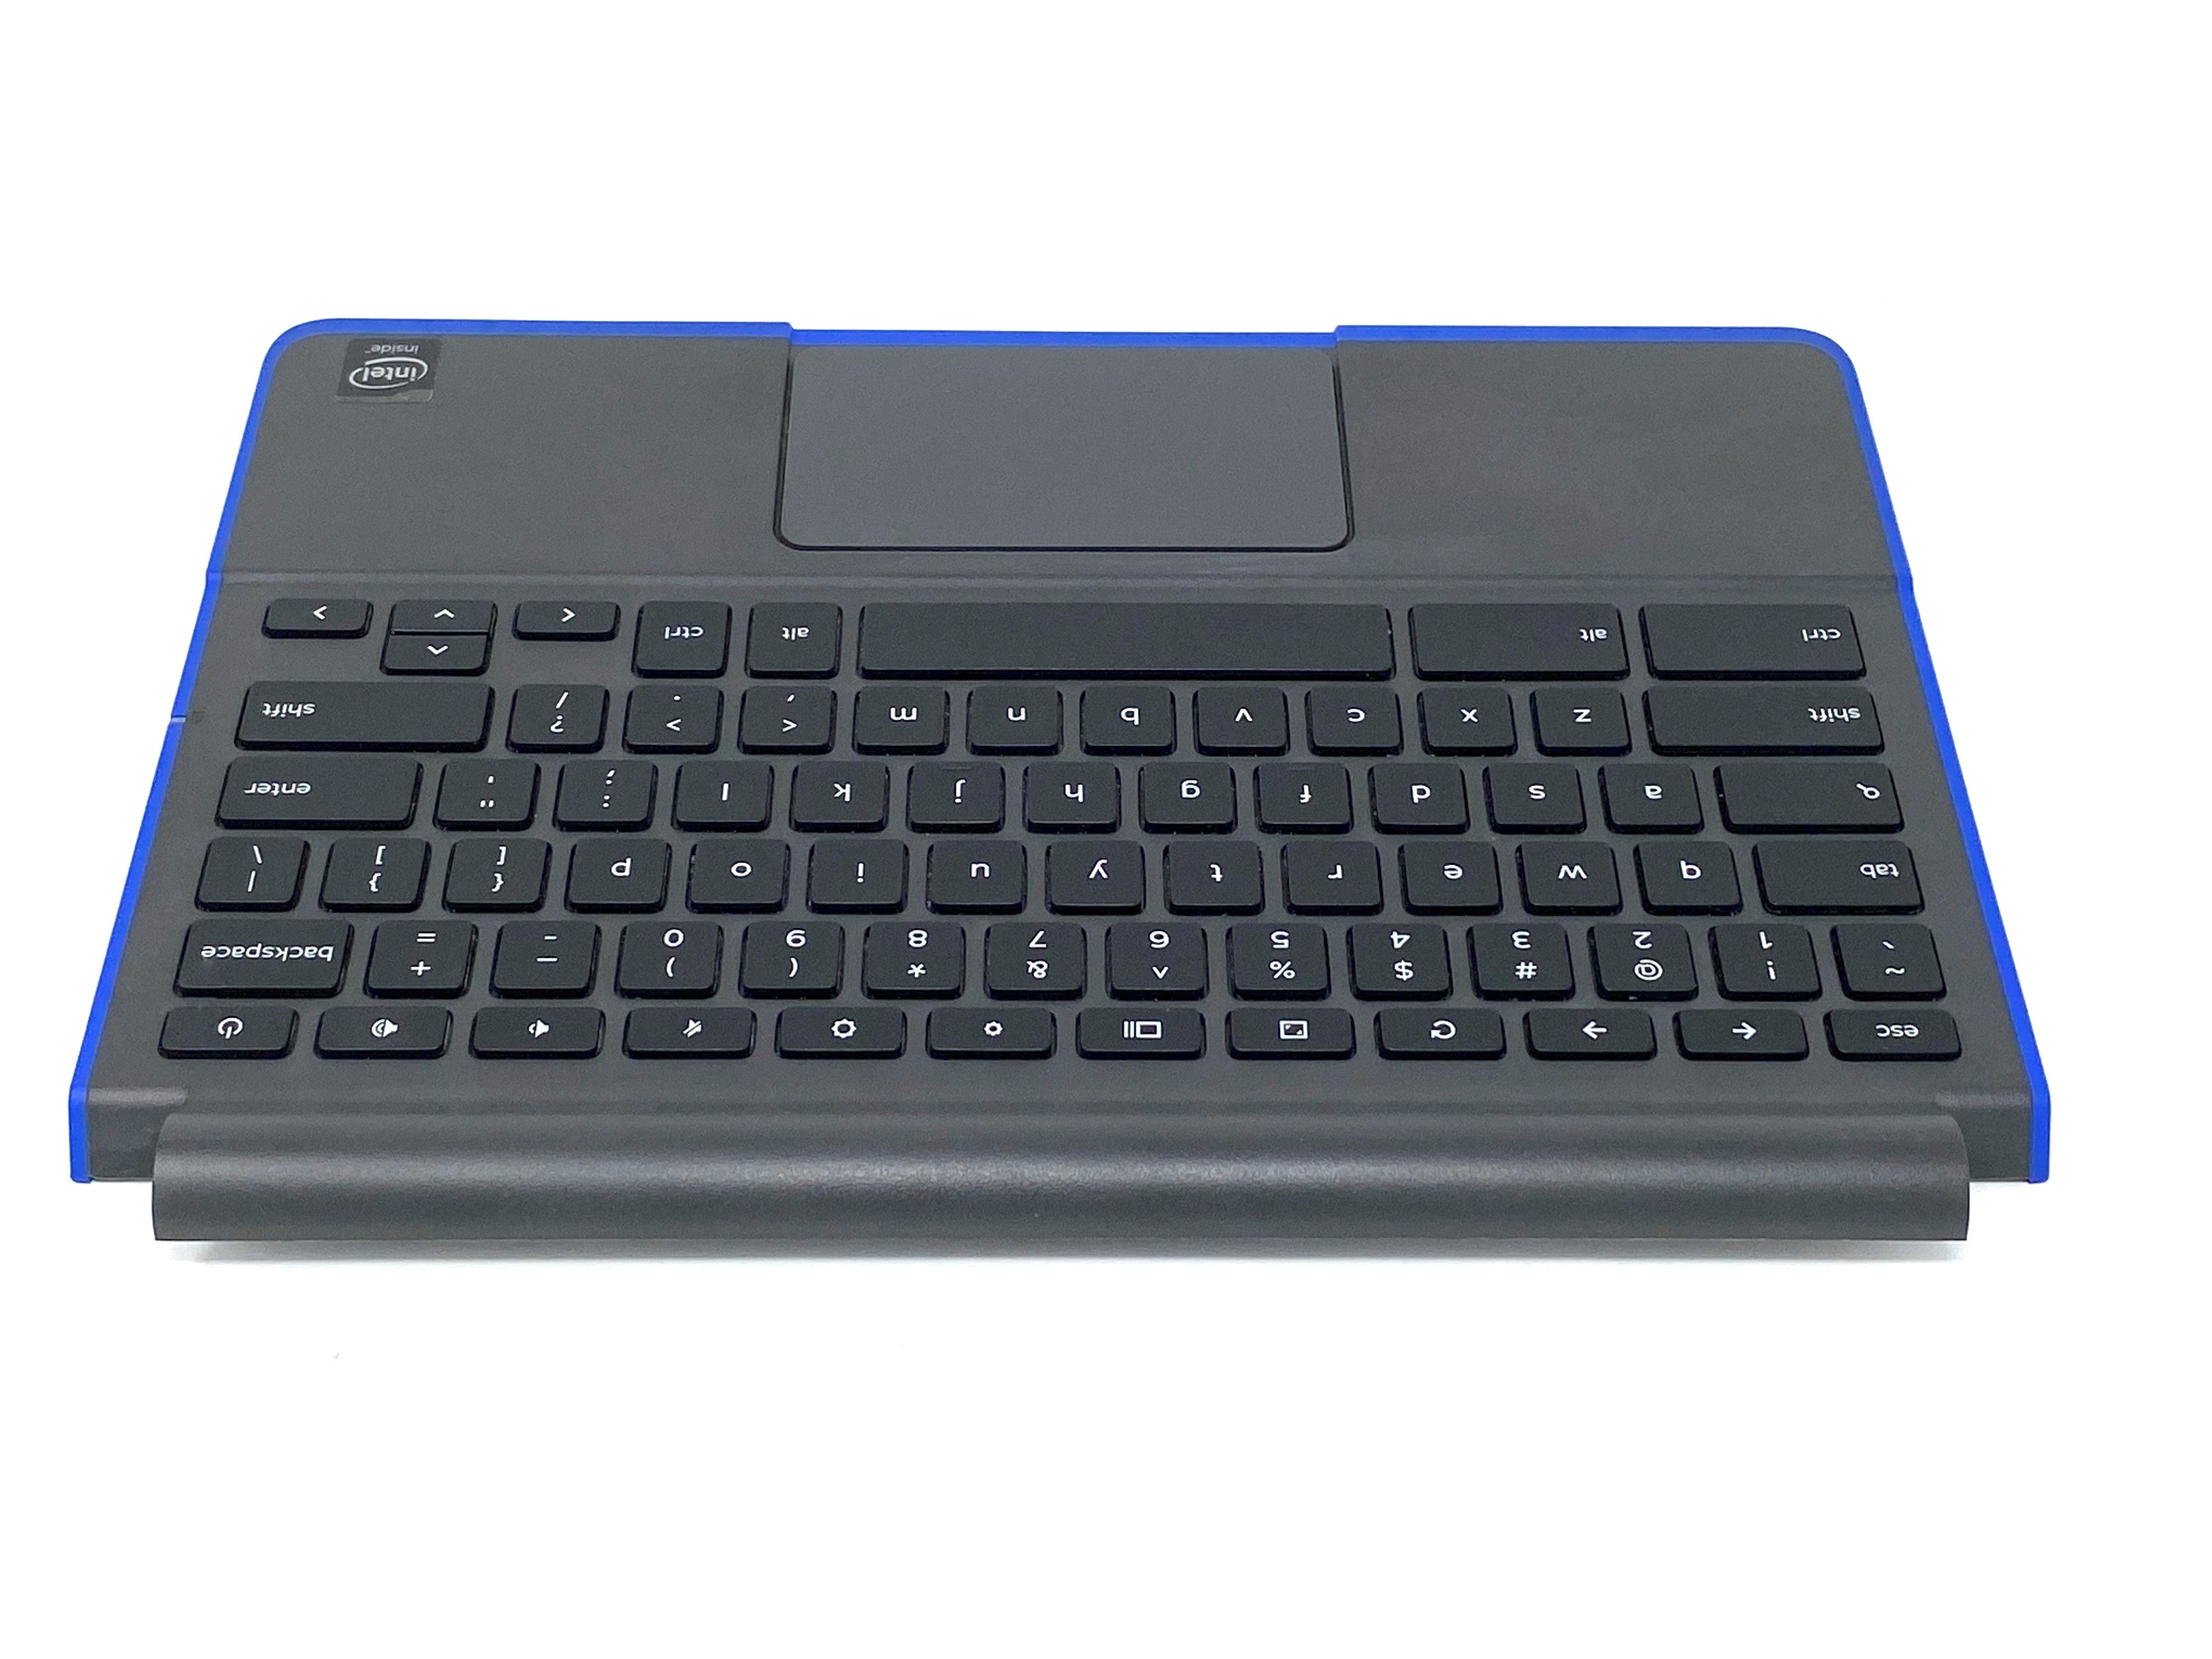 Dell Chromebook 11 3120 (P22T) Palmrest Keyboard Assembly w/Touchpad and NO SIM Slot (Blue Trim) - TCWI70 / 38ZM8TCWI70